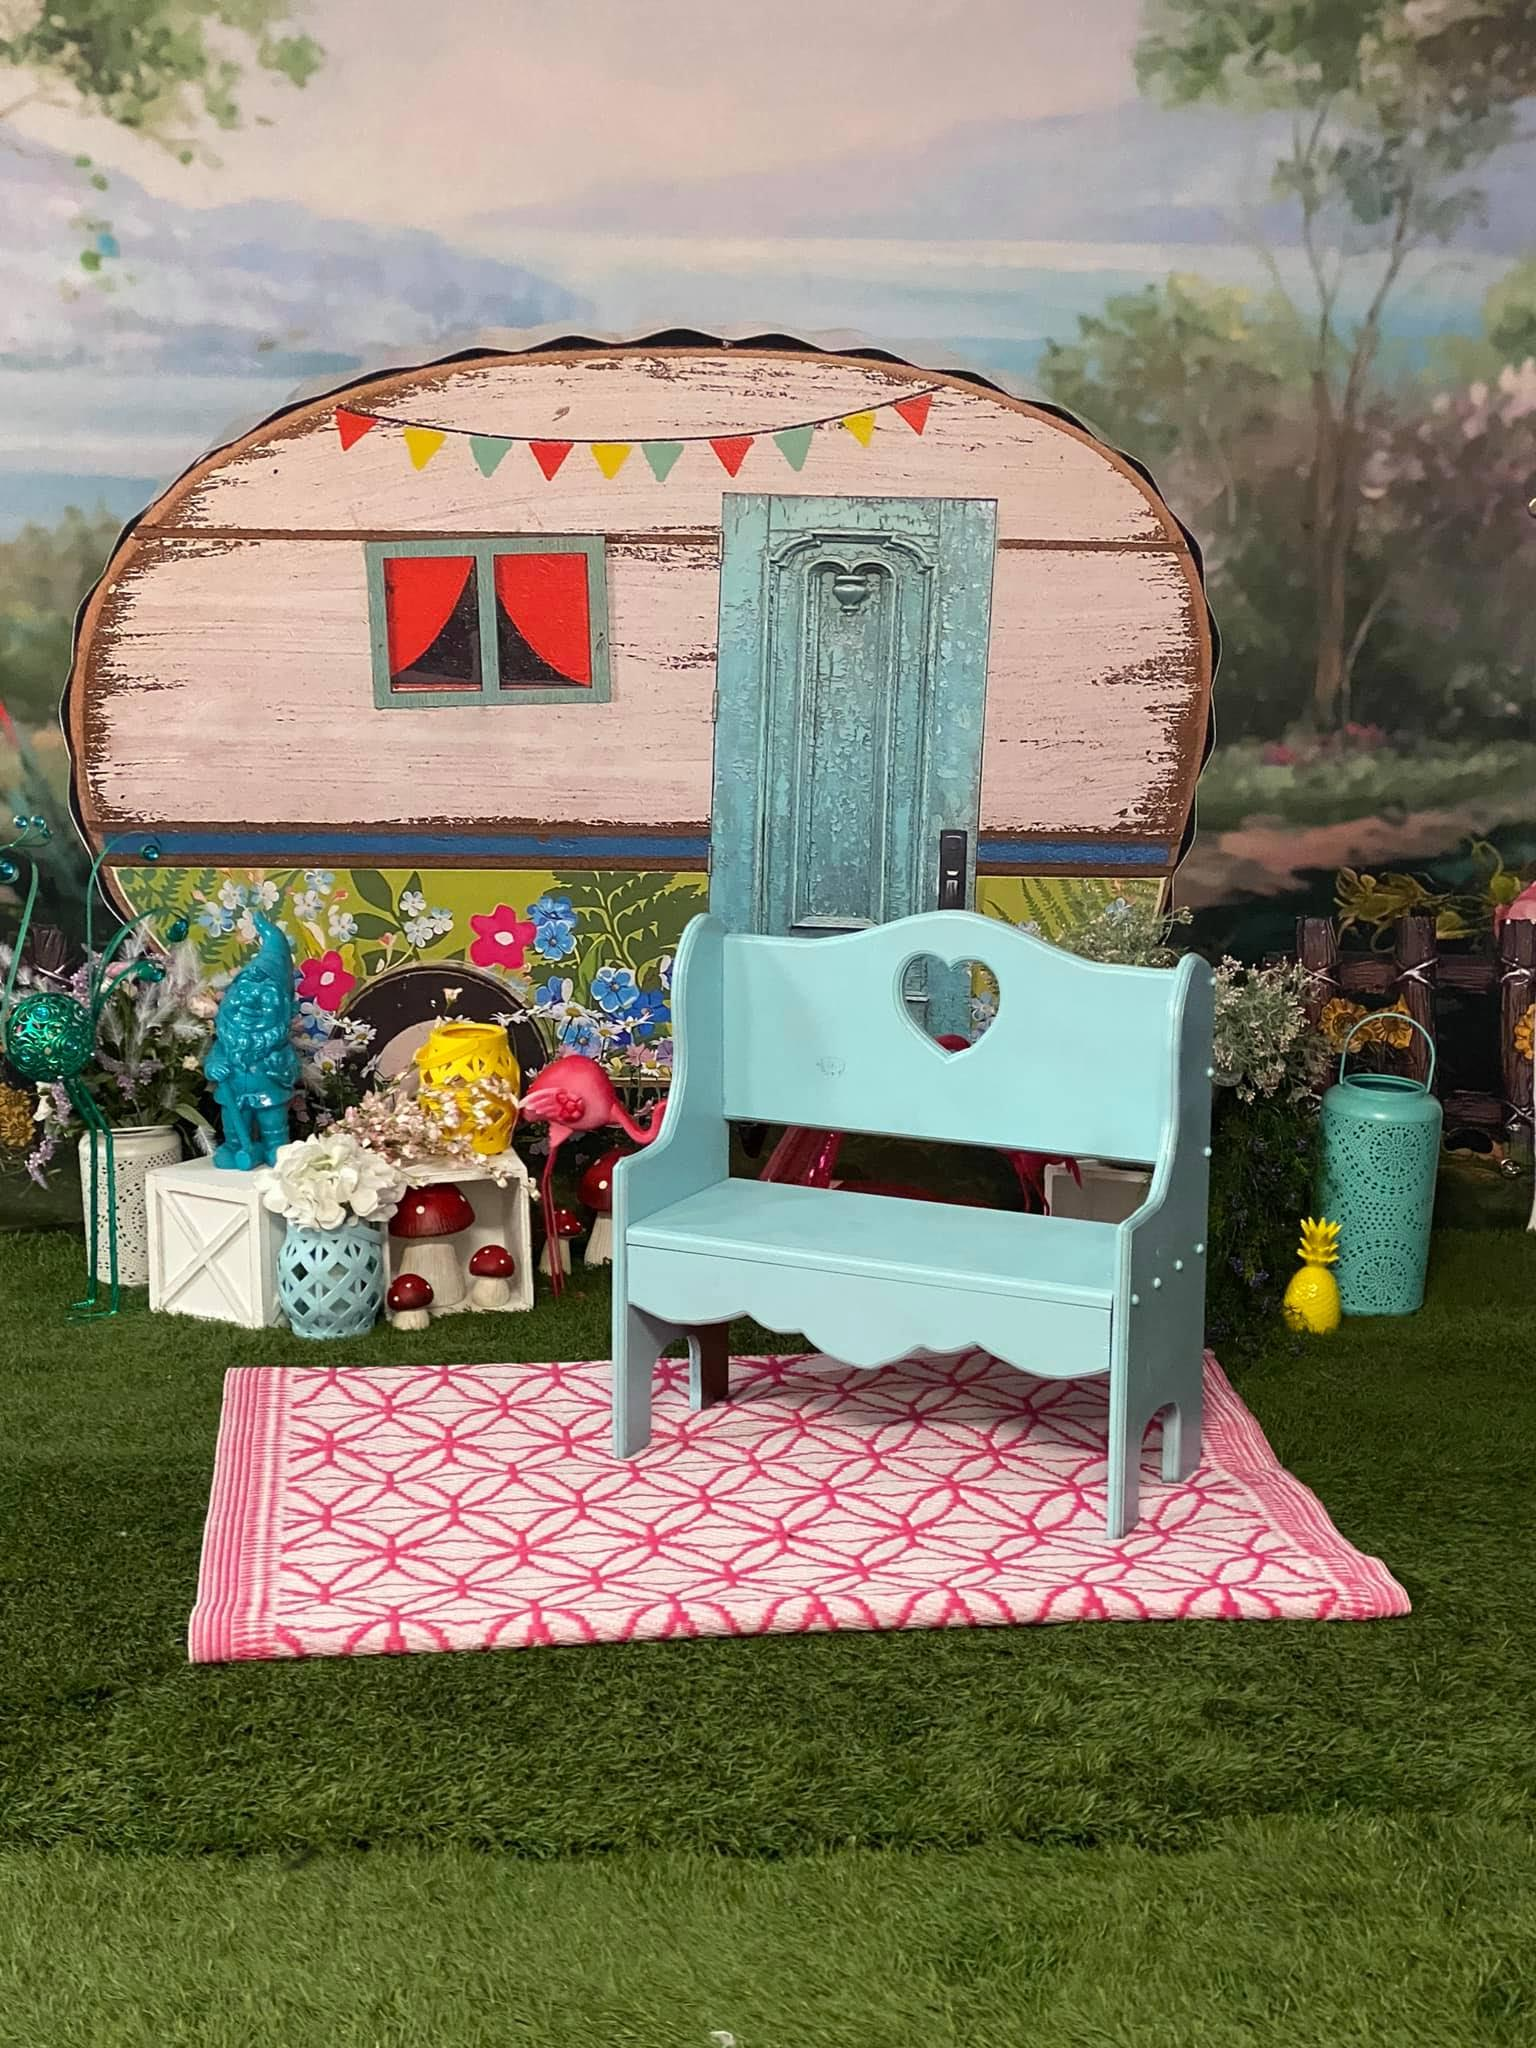 Gone Camping Cake Smash Photography Backdrops For Children Birthday Photographic Studio Photo Backgrounds Spring Park Flowers enlarge